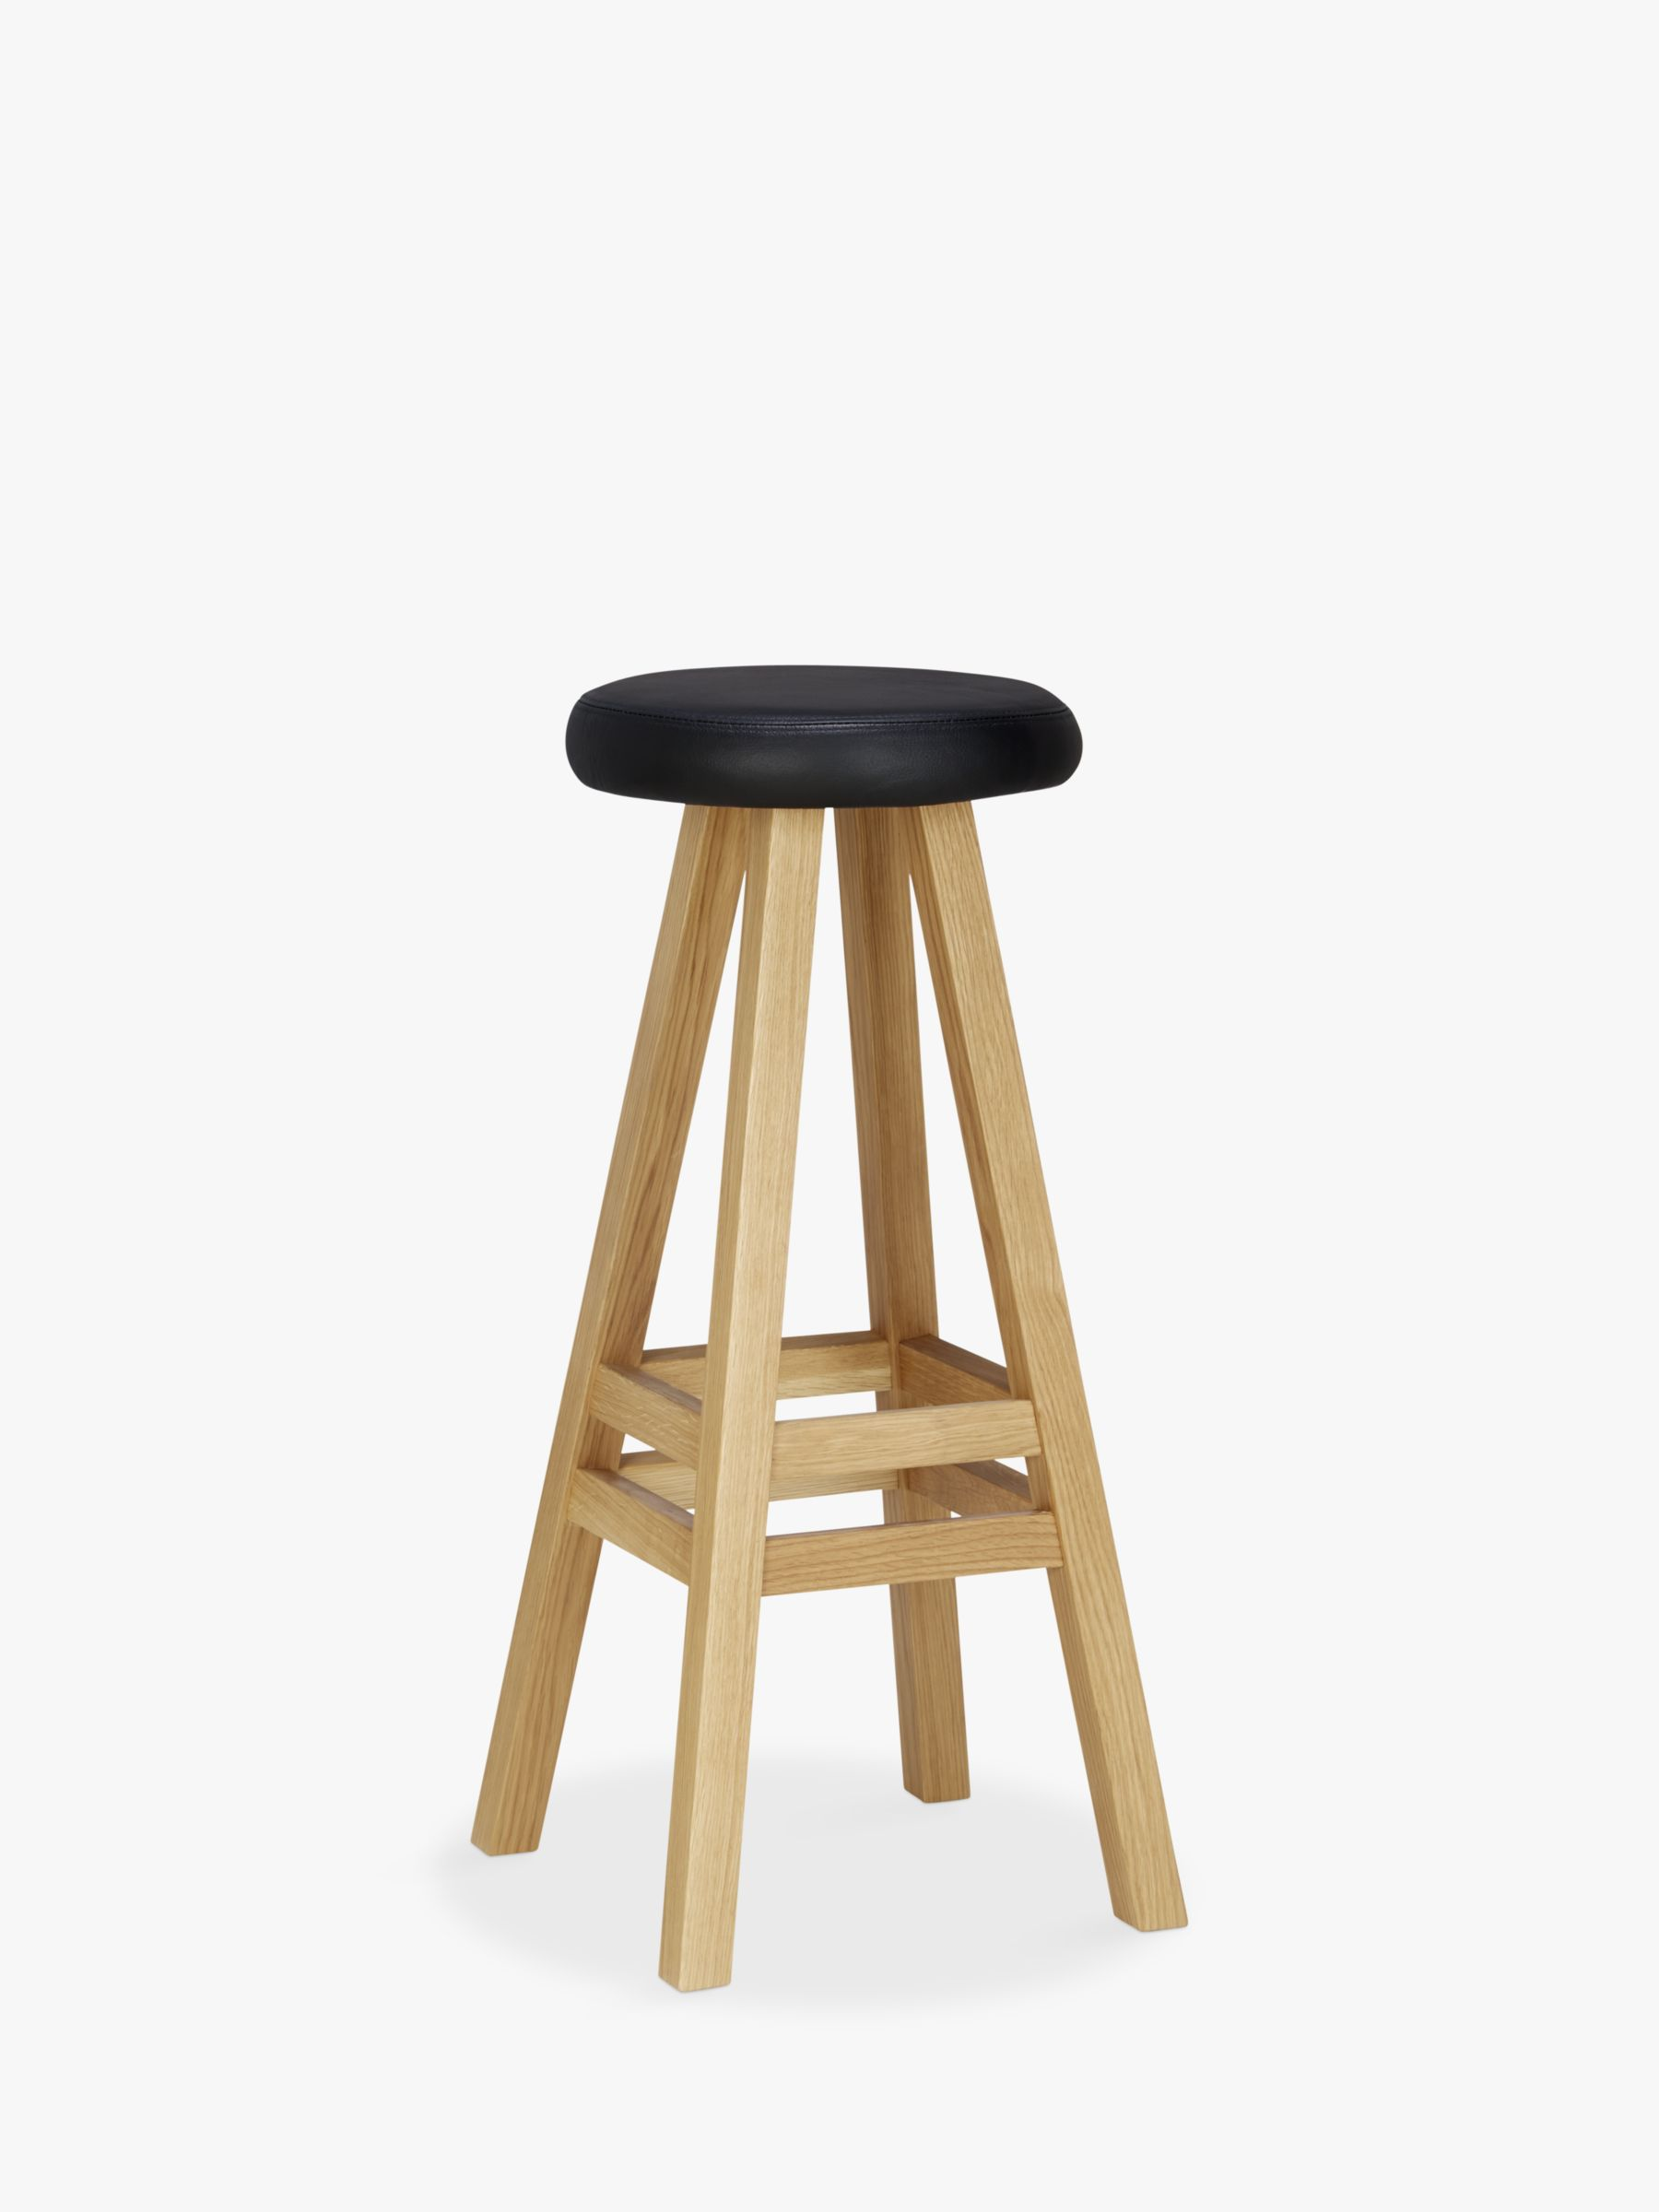 Case Nazanin Kamali for Case Oki-Nami Bar Stool, Oak